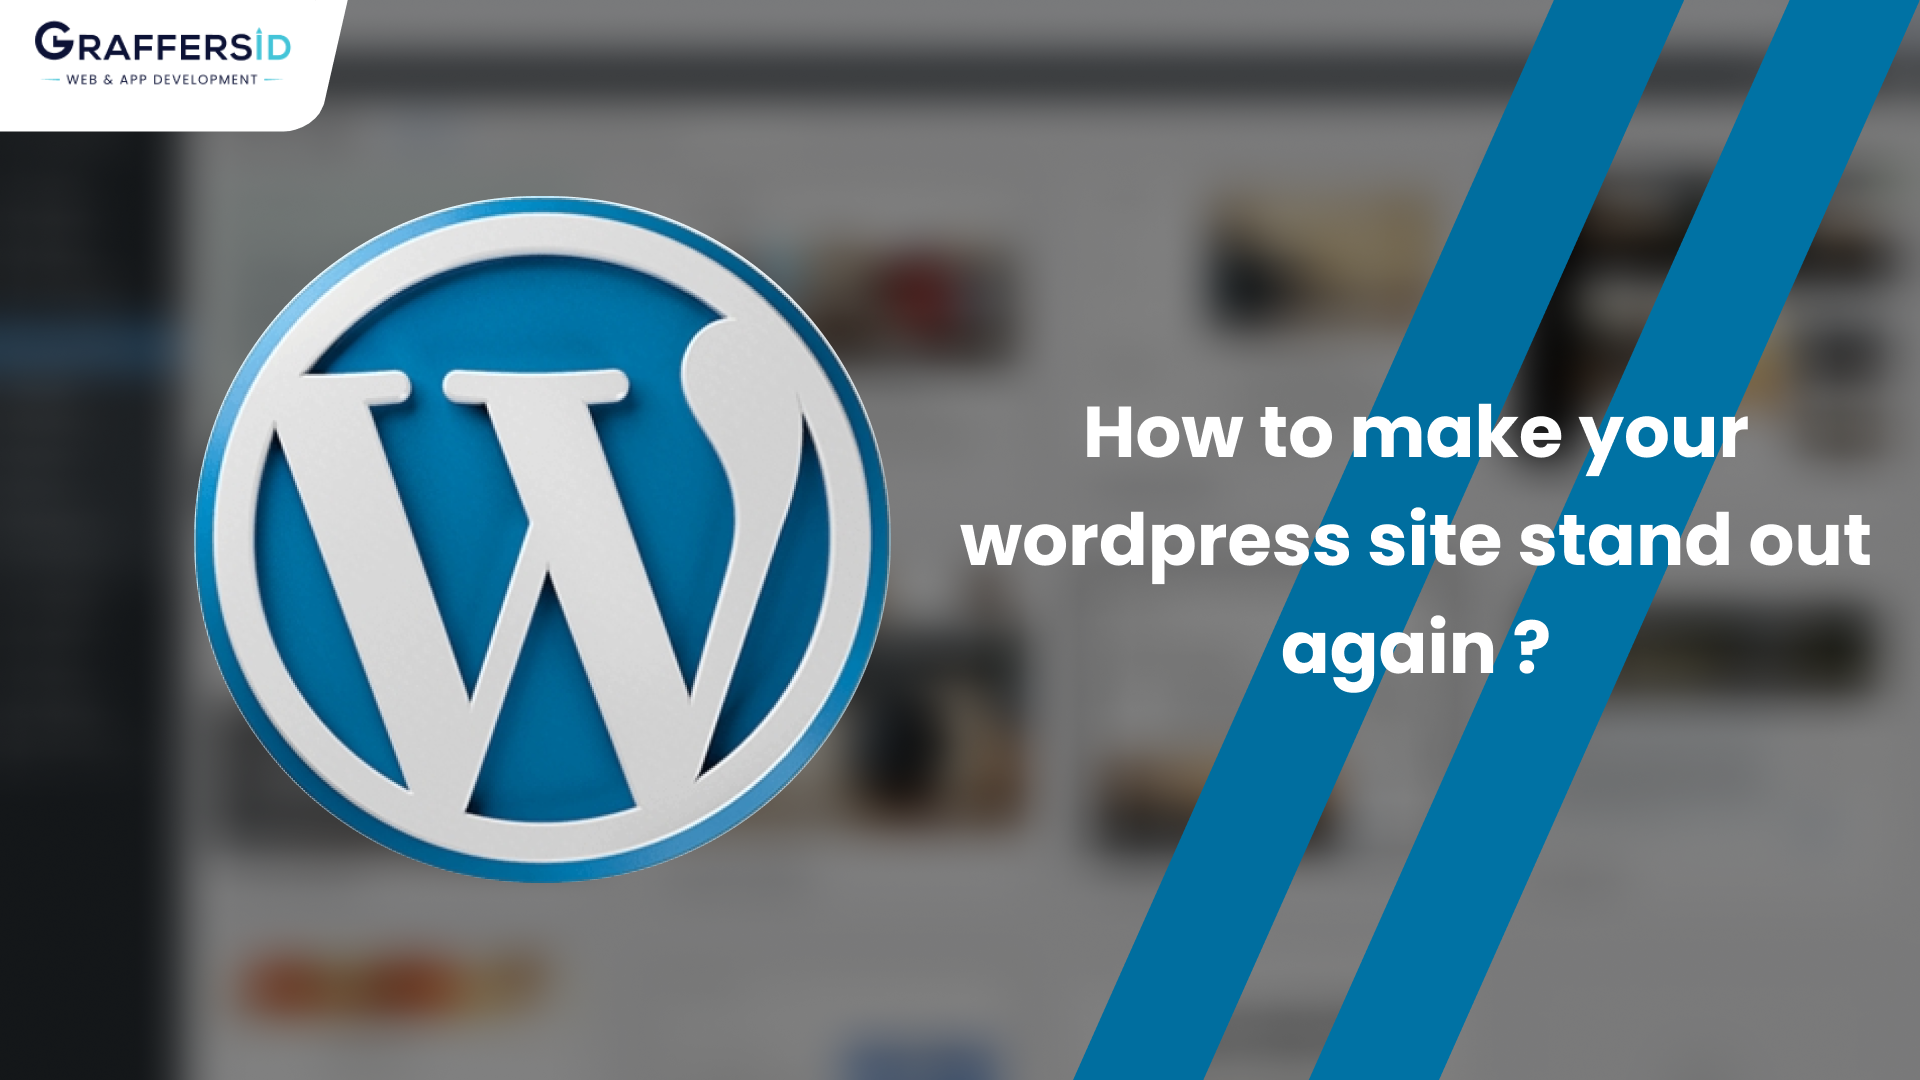 8 Ways to Make your WordPress Website Standout from the competition